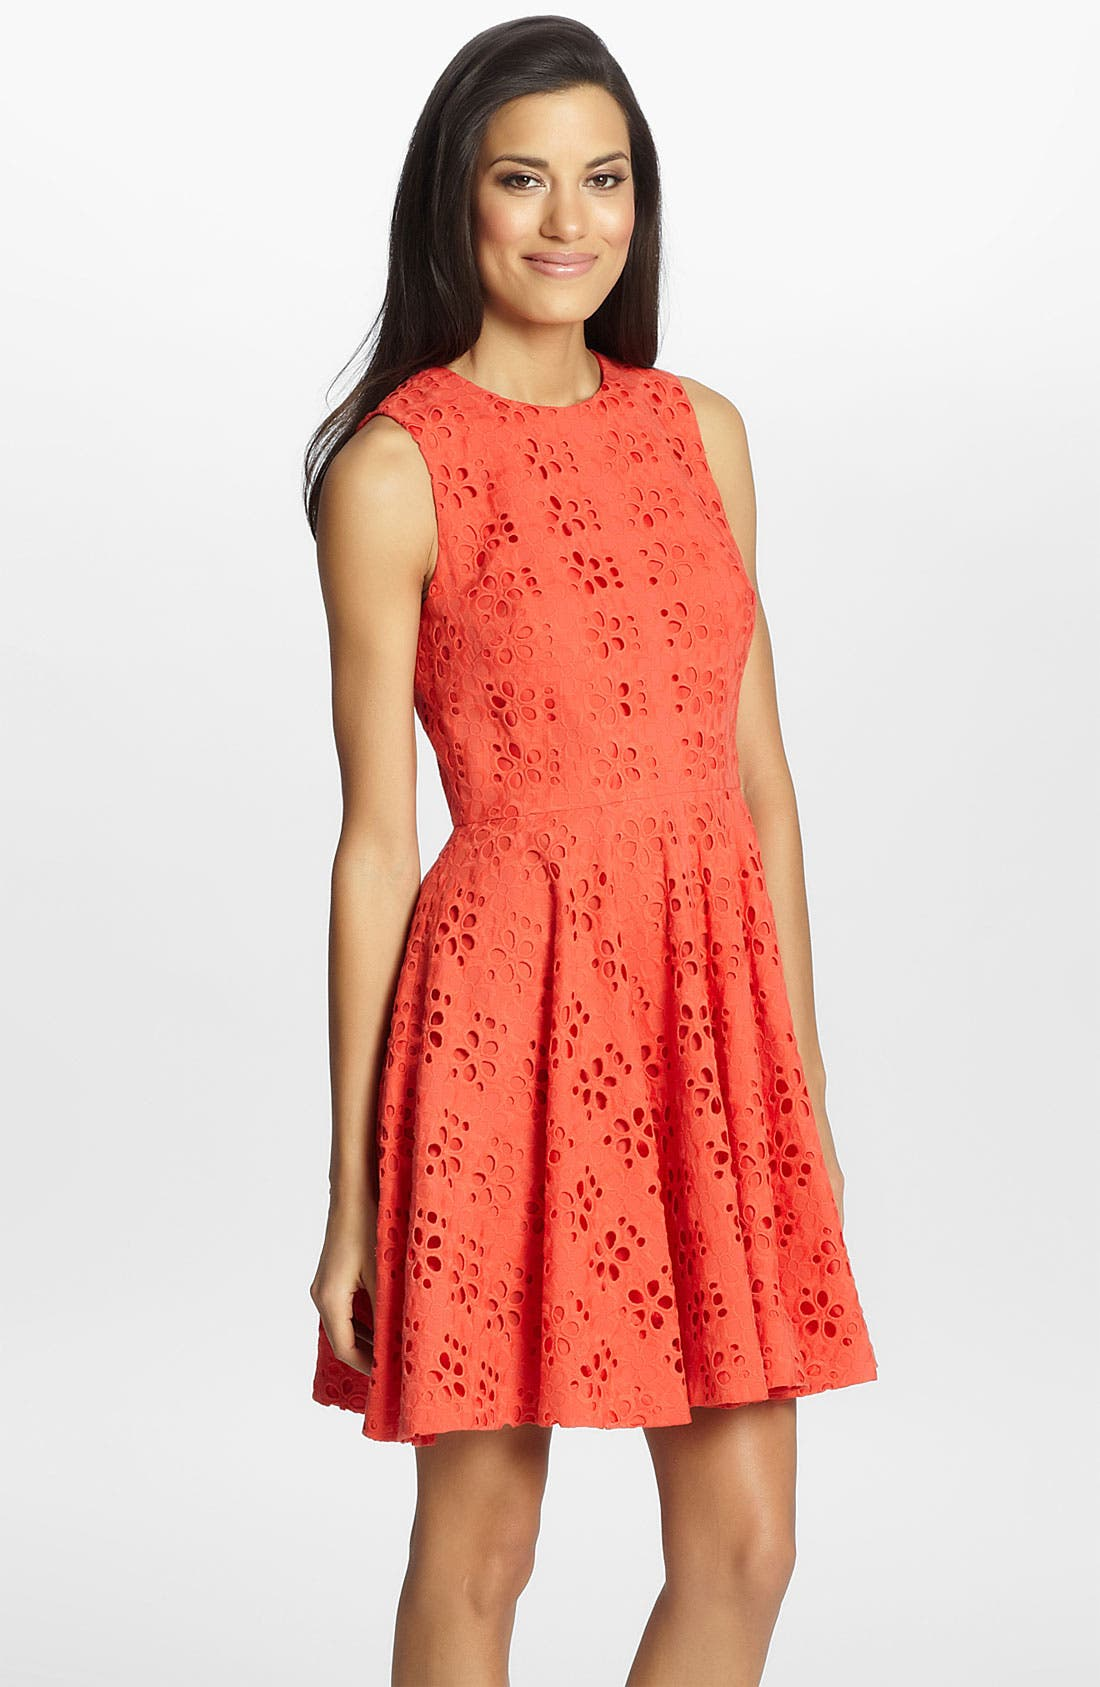 Main Image - Cynthia Steffe 'Hailey' Eyelet Fit & Flare Dress